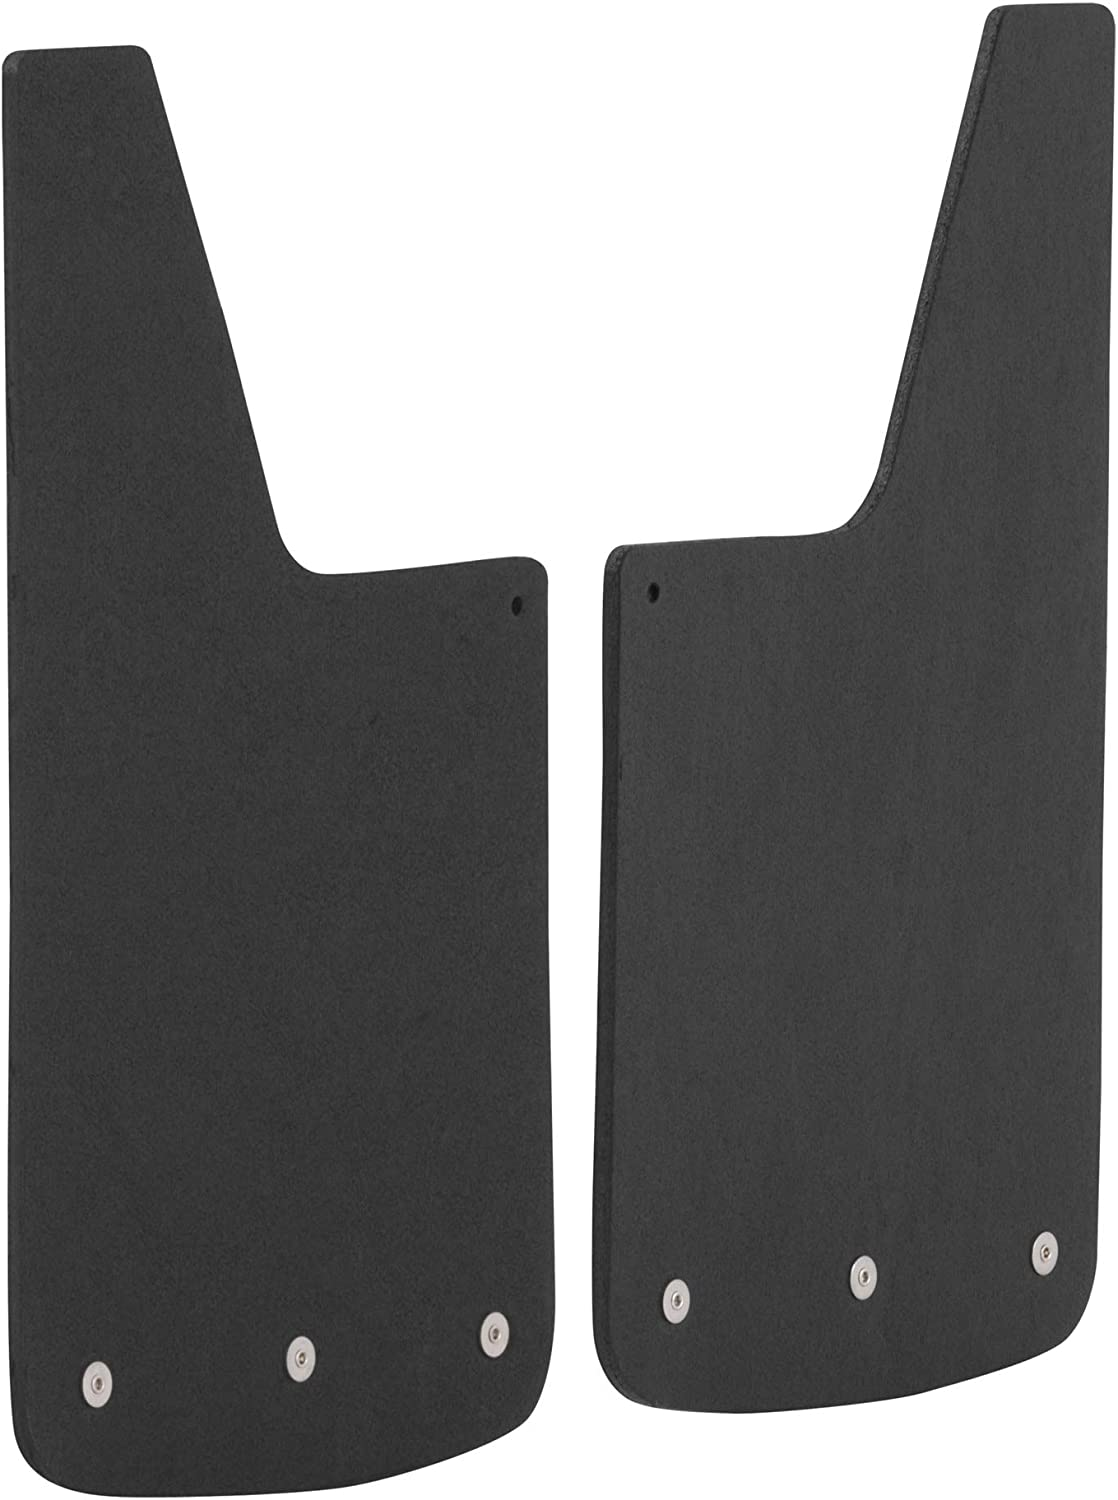 LUVERNE TRK 250936 Front 12 x 23-Inch Textured Rubber Mud Guards Select Ram 1500